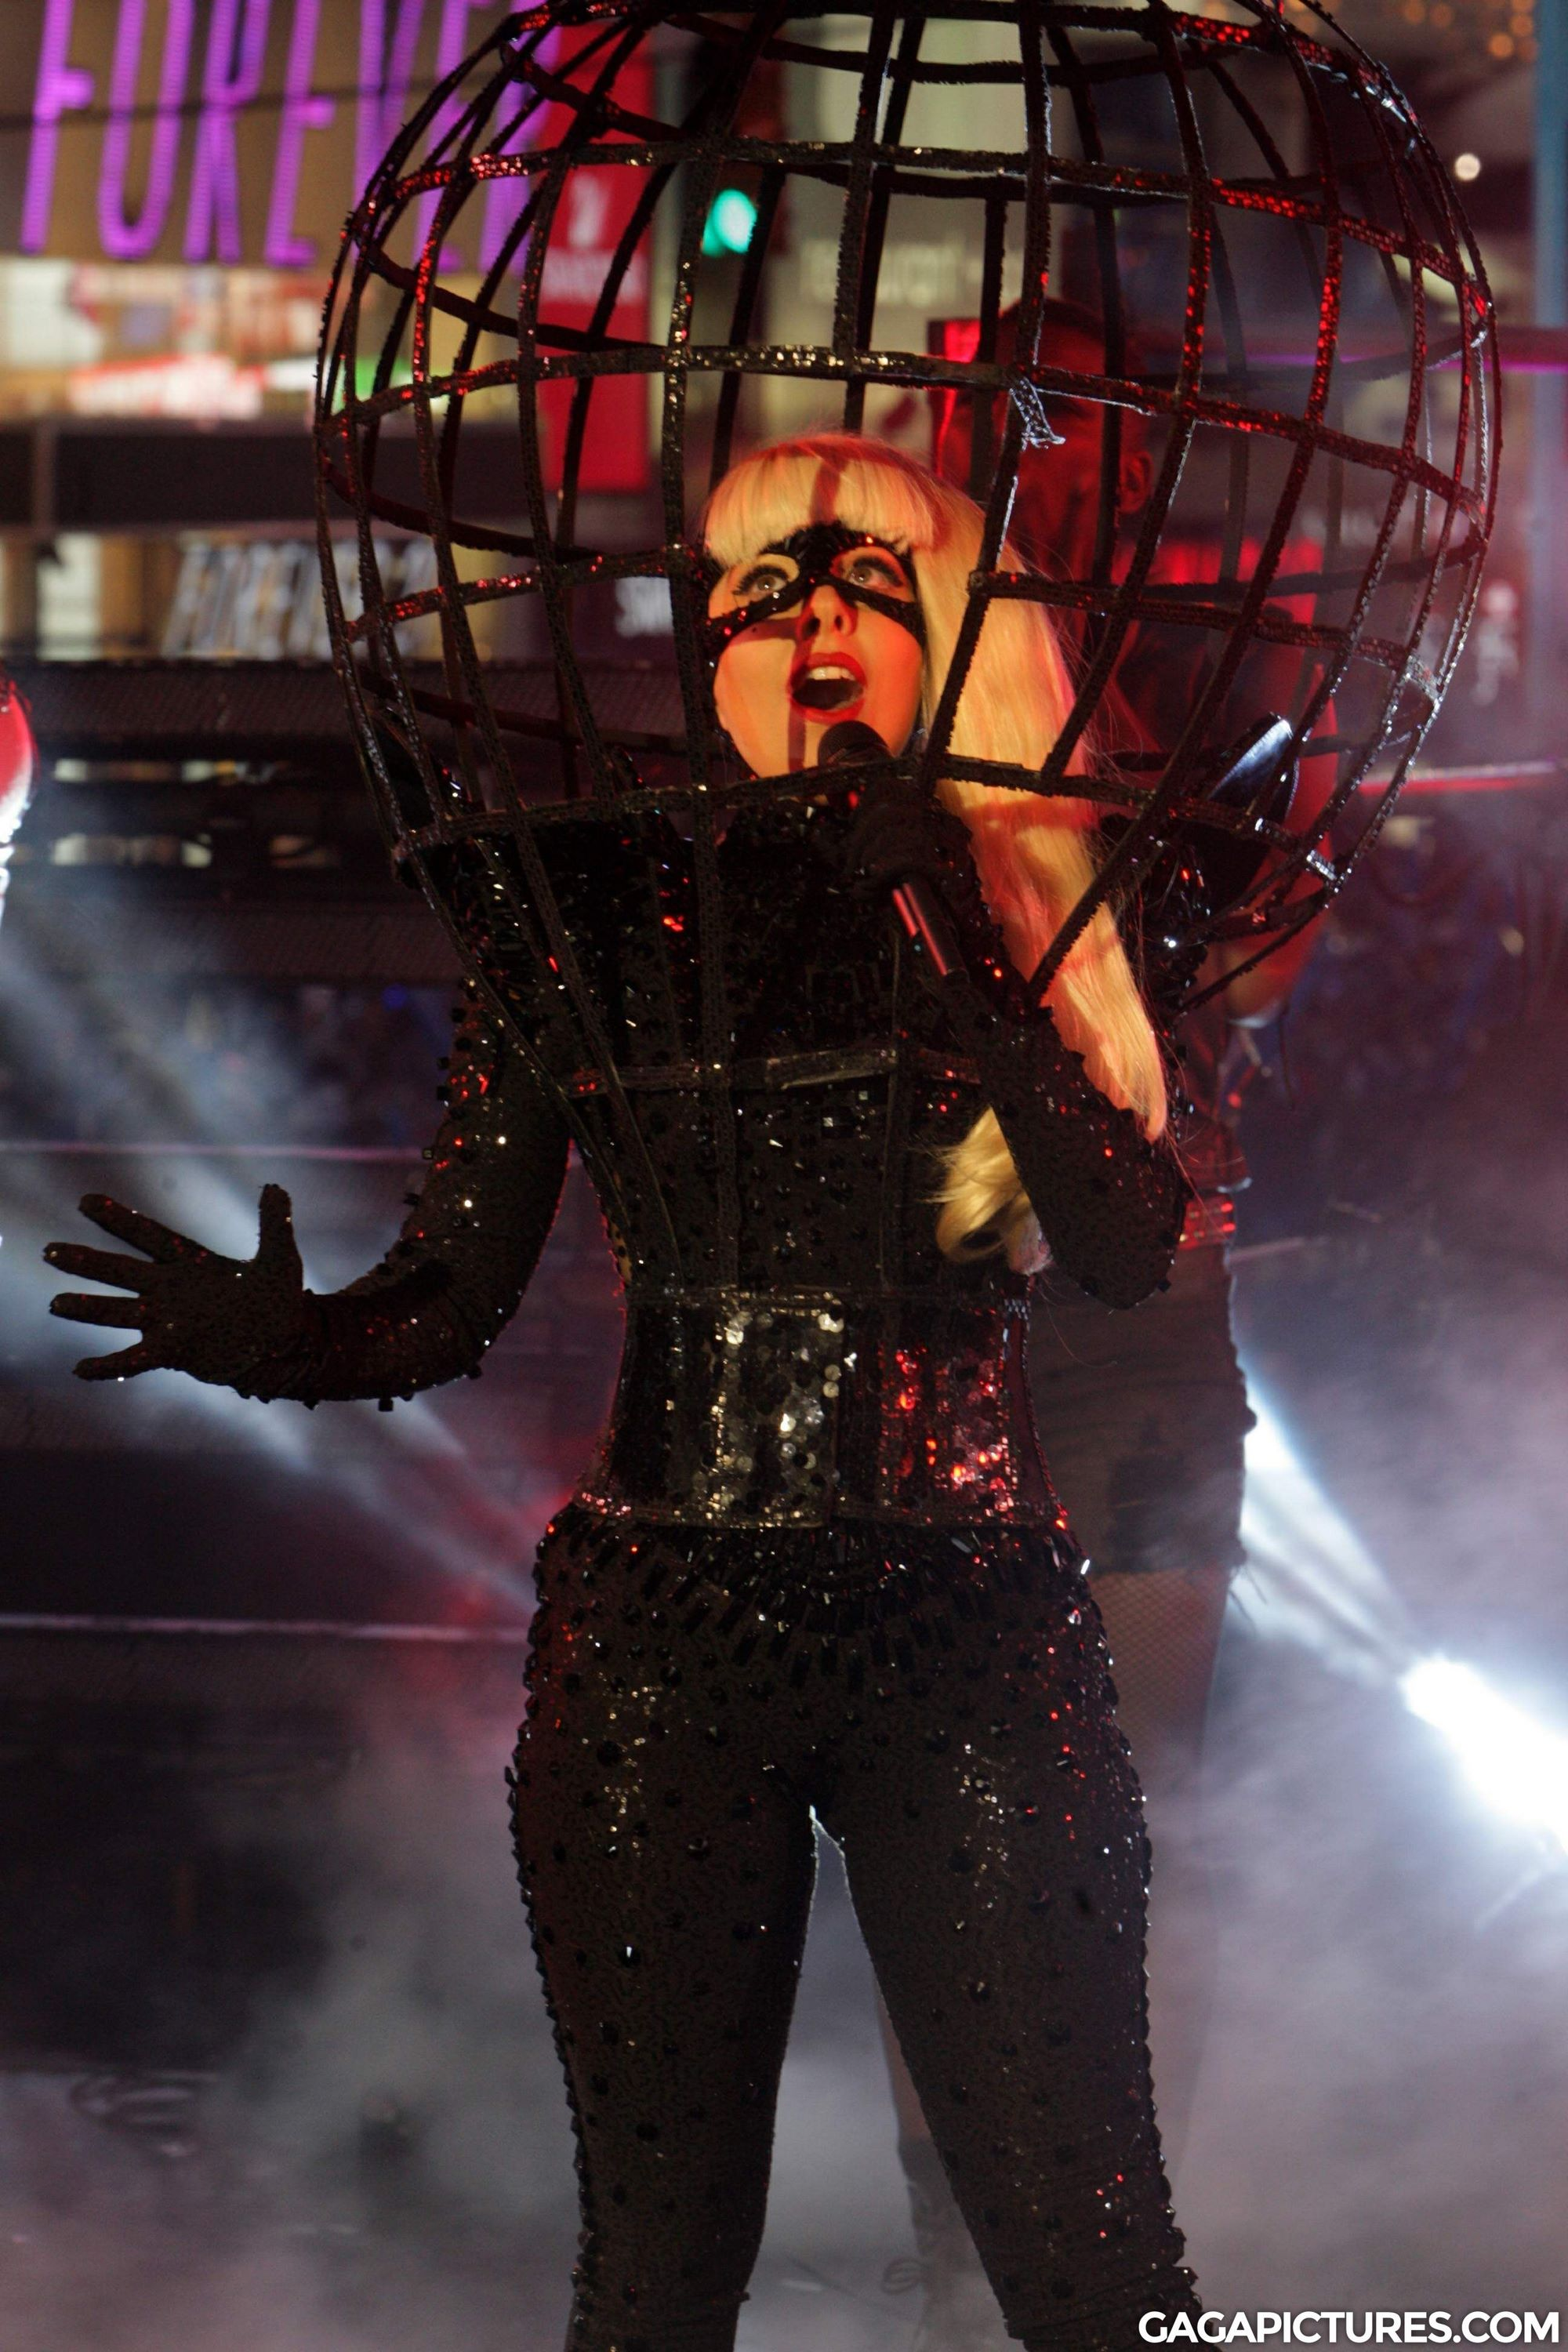 File:12-31-11 Times Square Performance 2.jpg